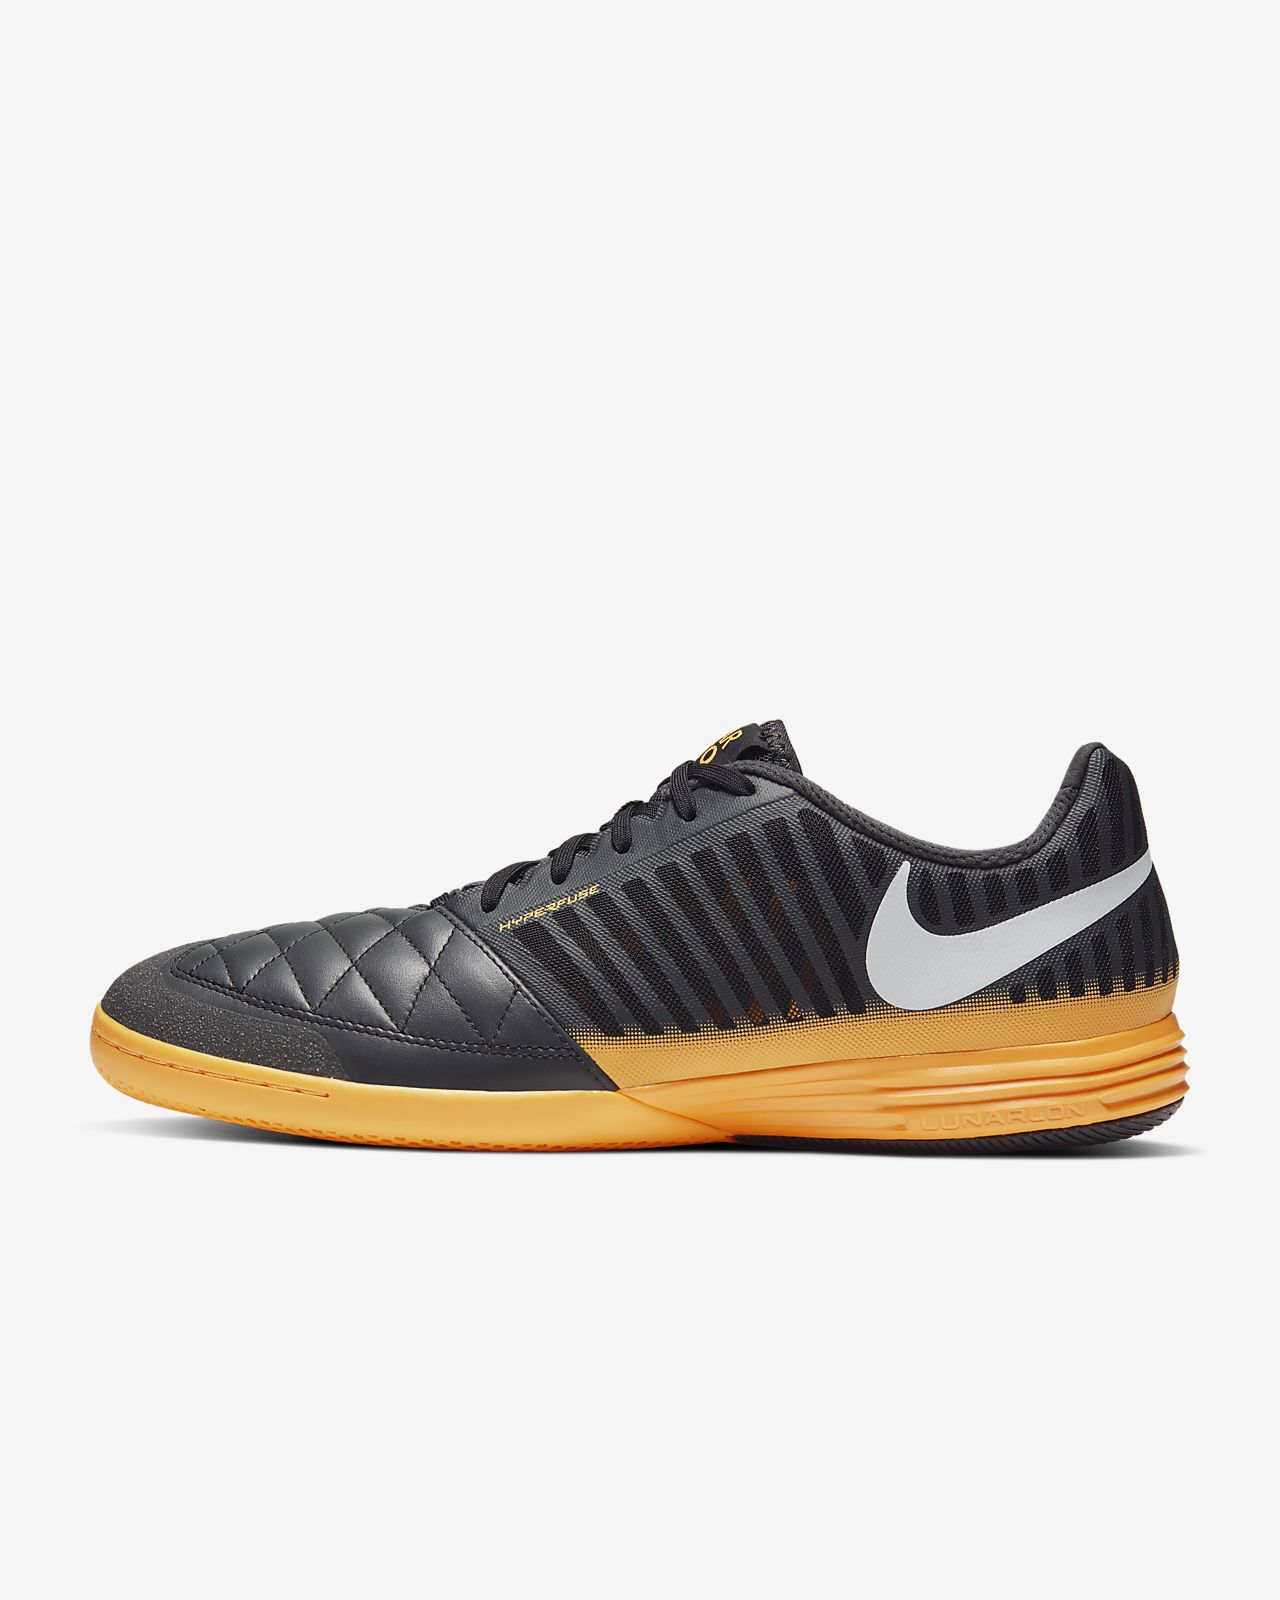 nike chaussure foot salle